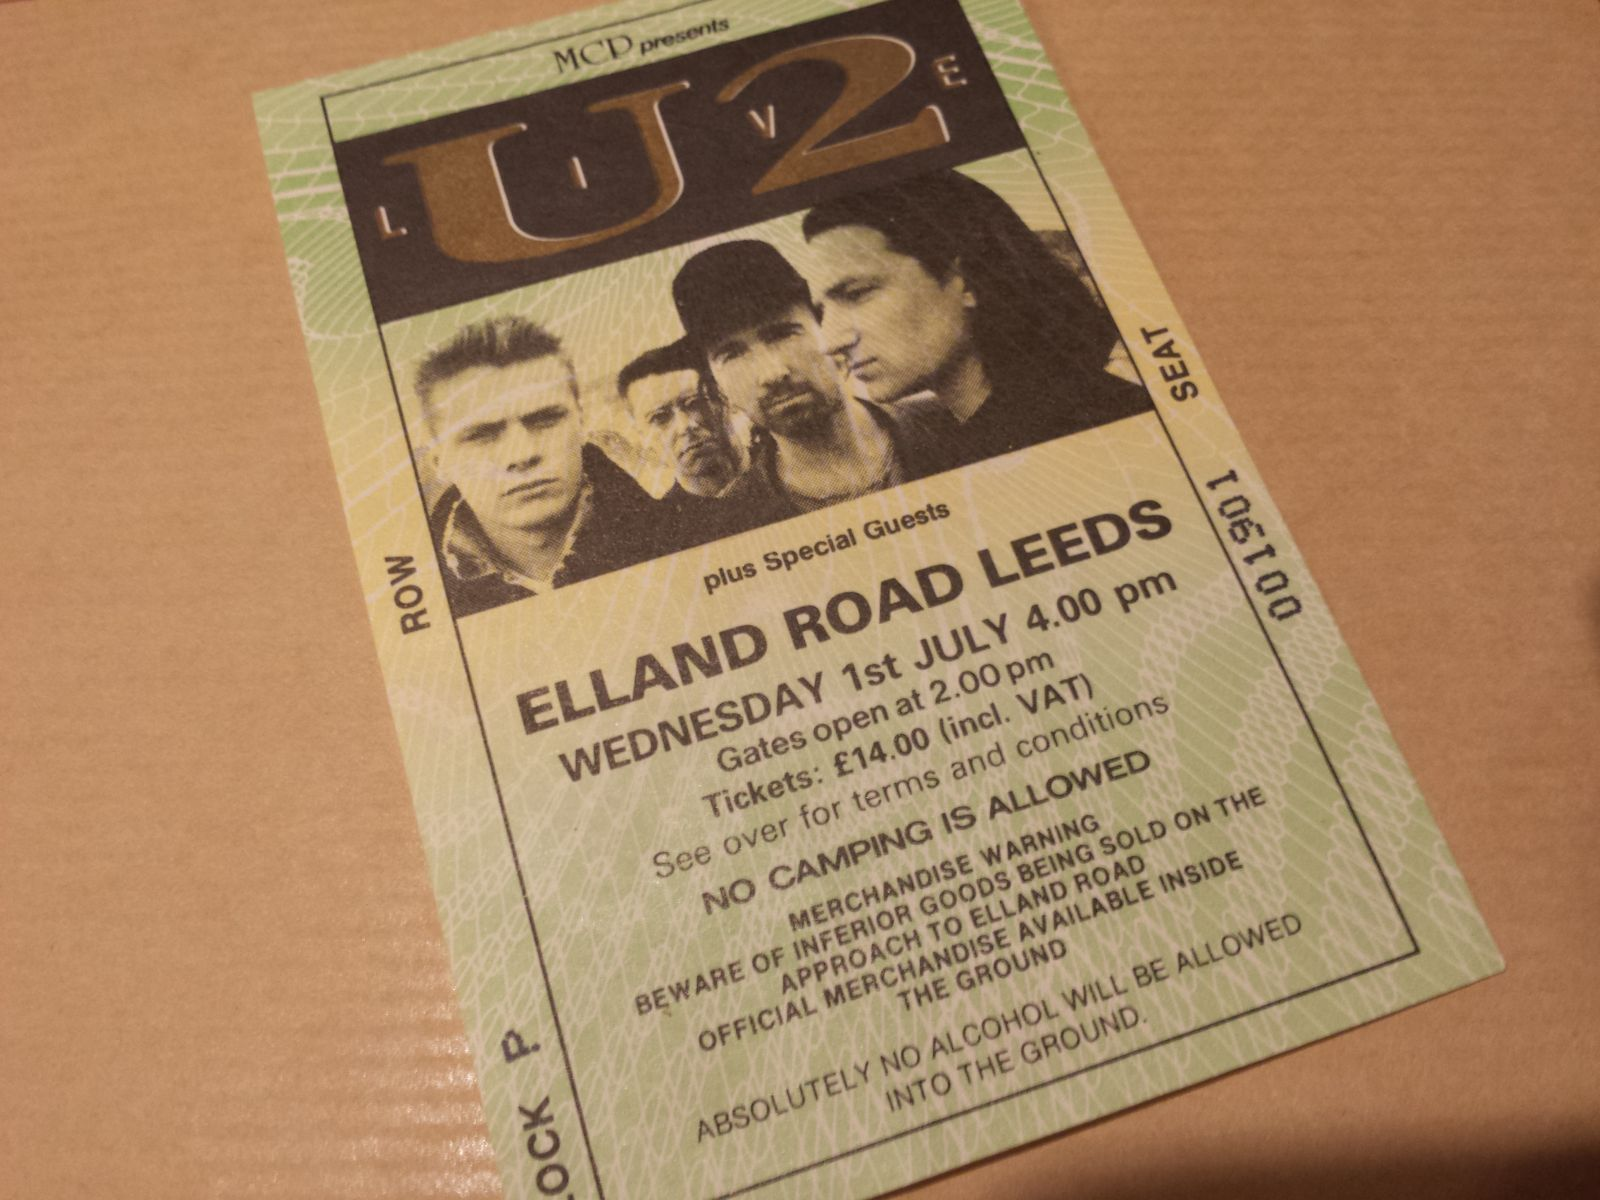 The Joshua Tree Tour 1987 - Elland Road Leeds Ticket Stub